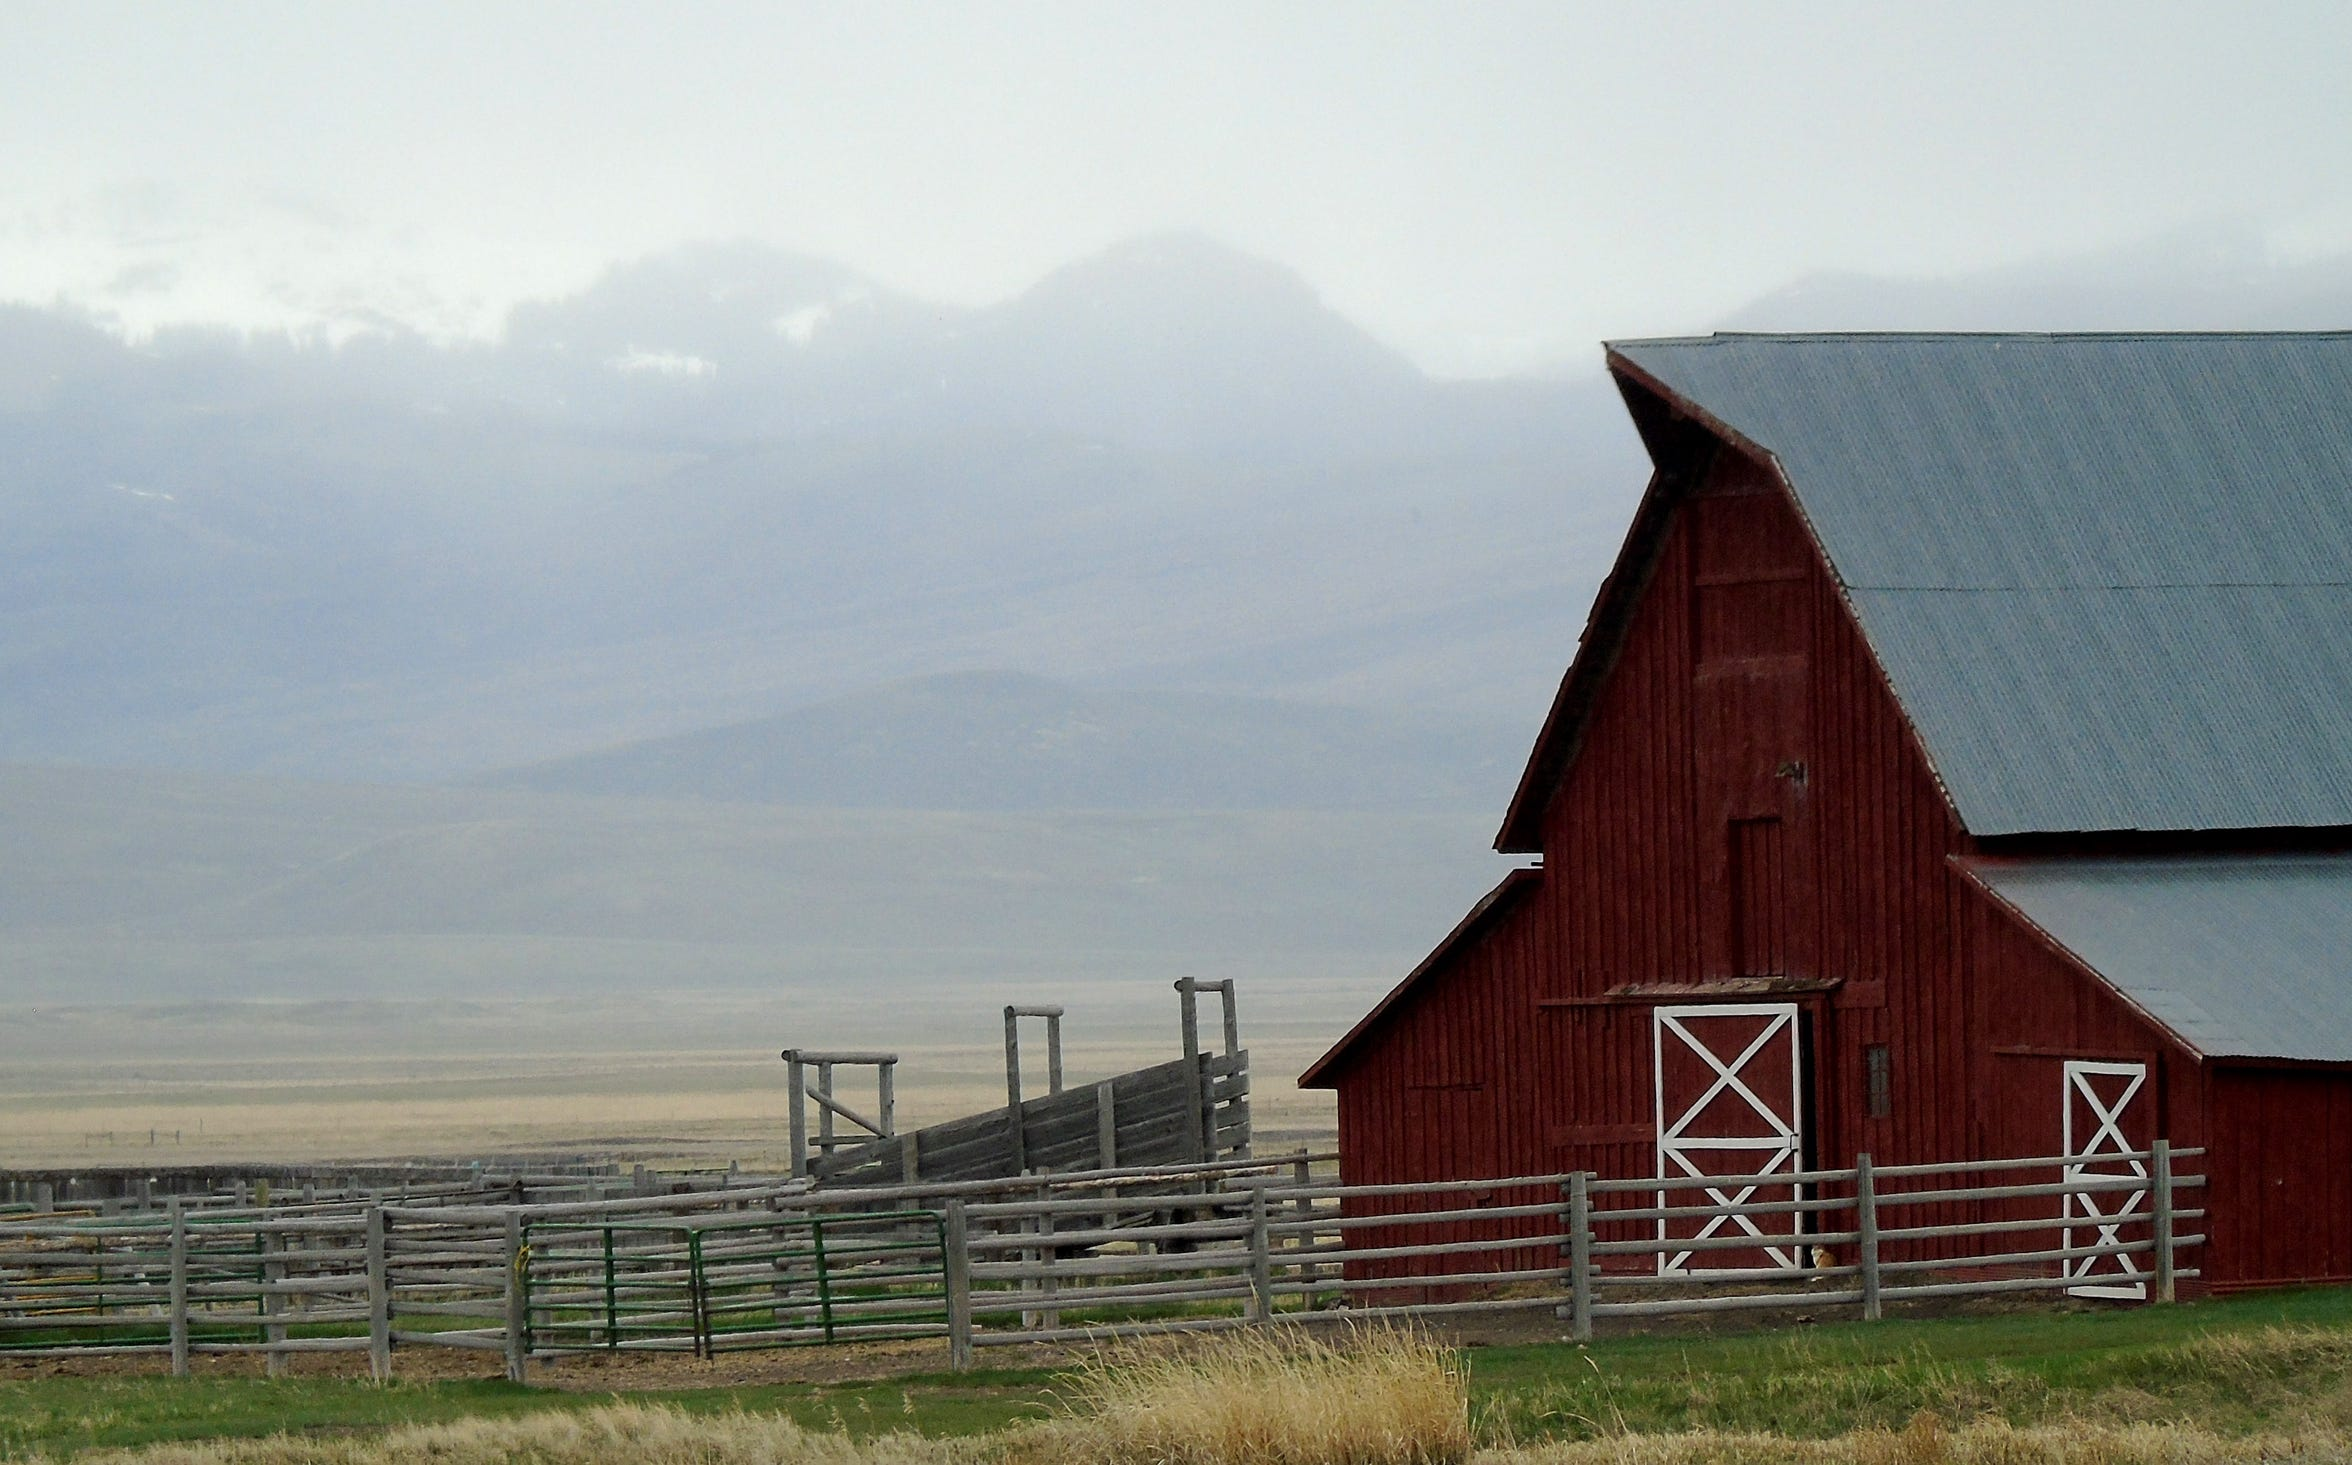 A red barn is part of the landscape in Montana's remote Centennial Valley.